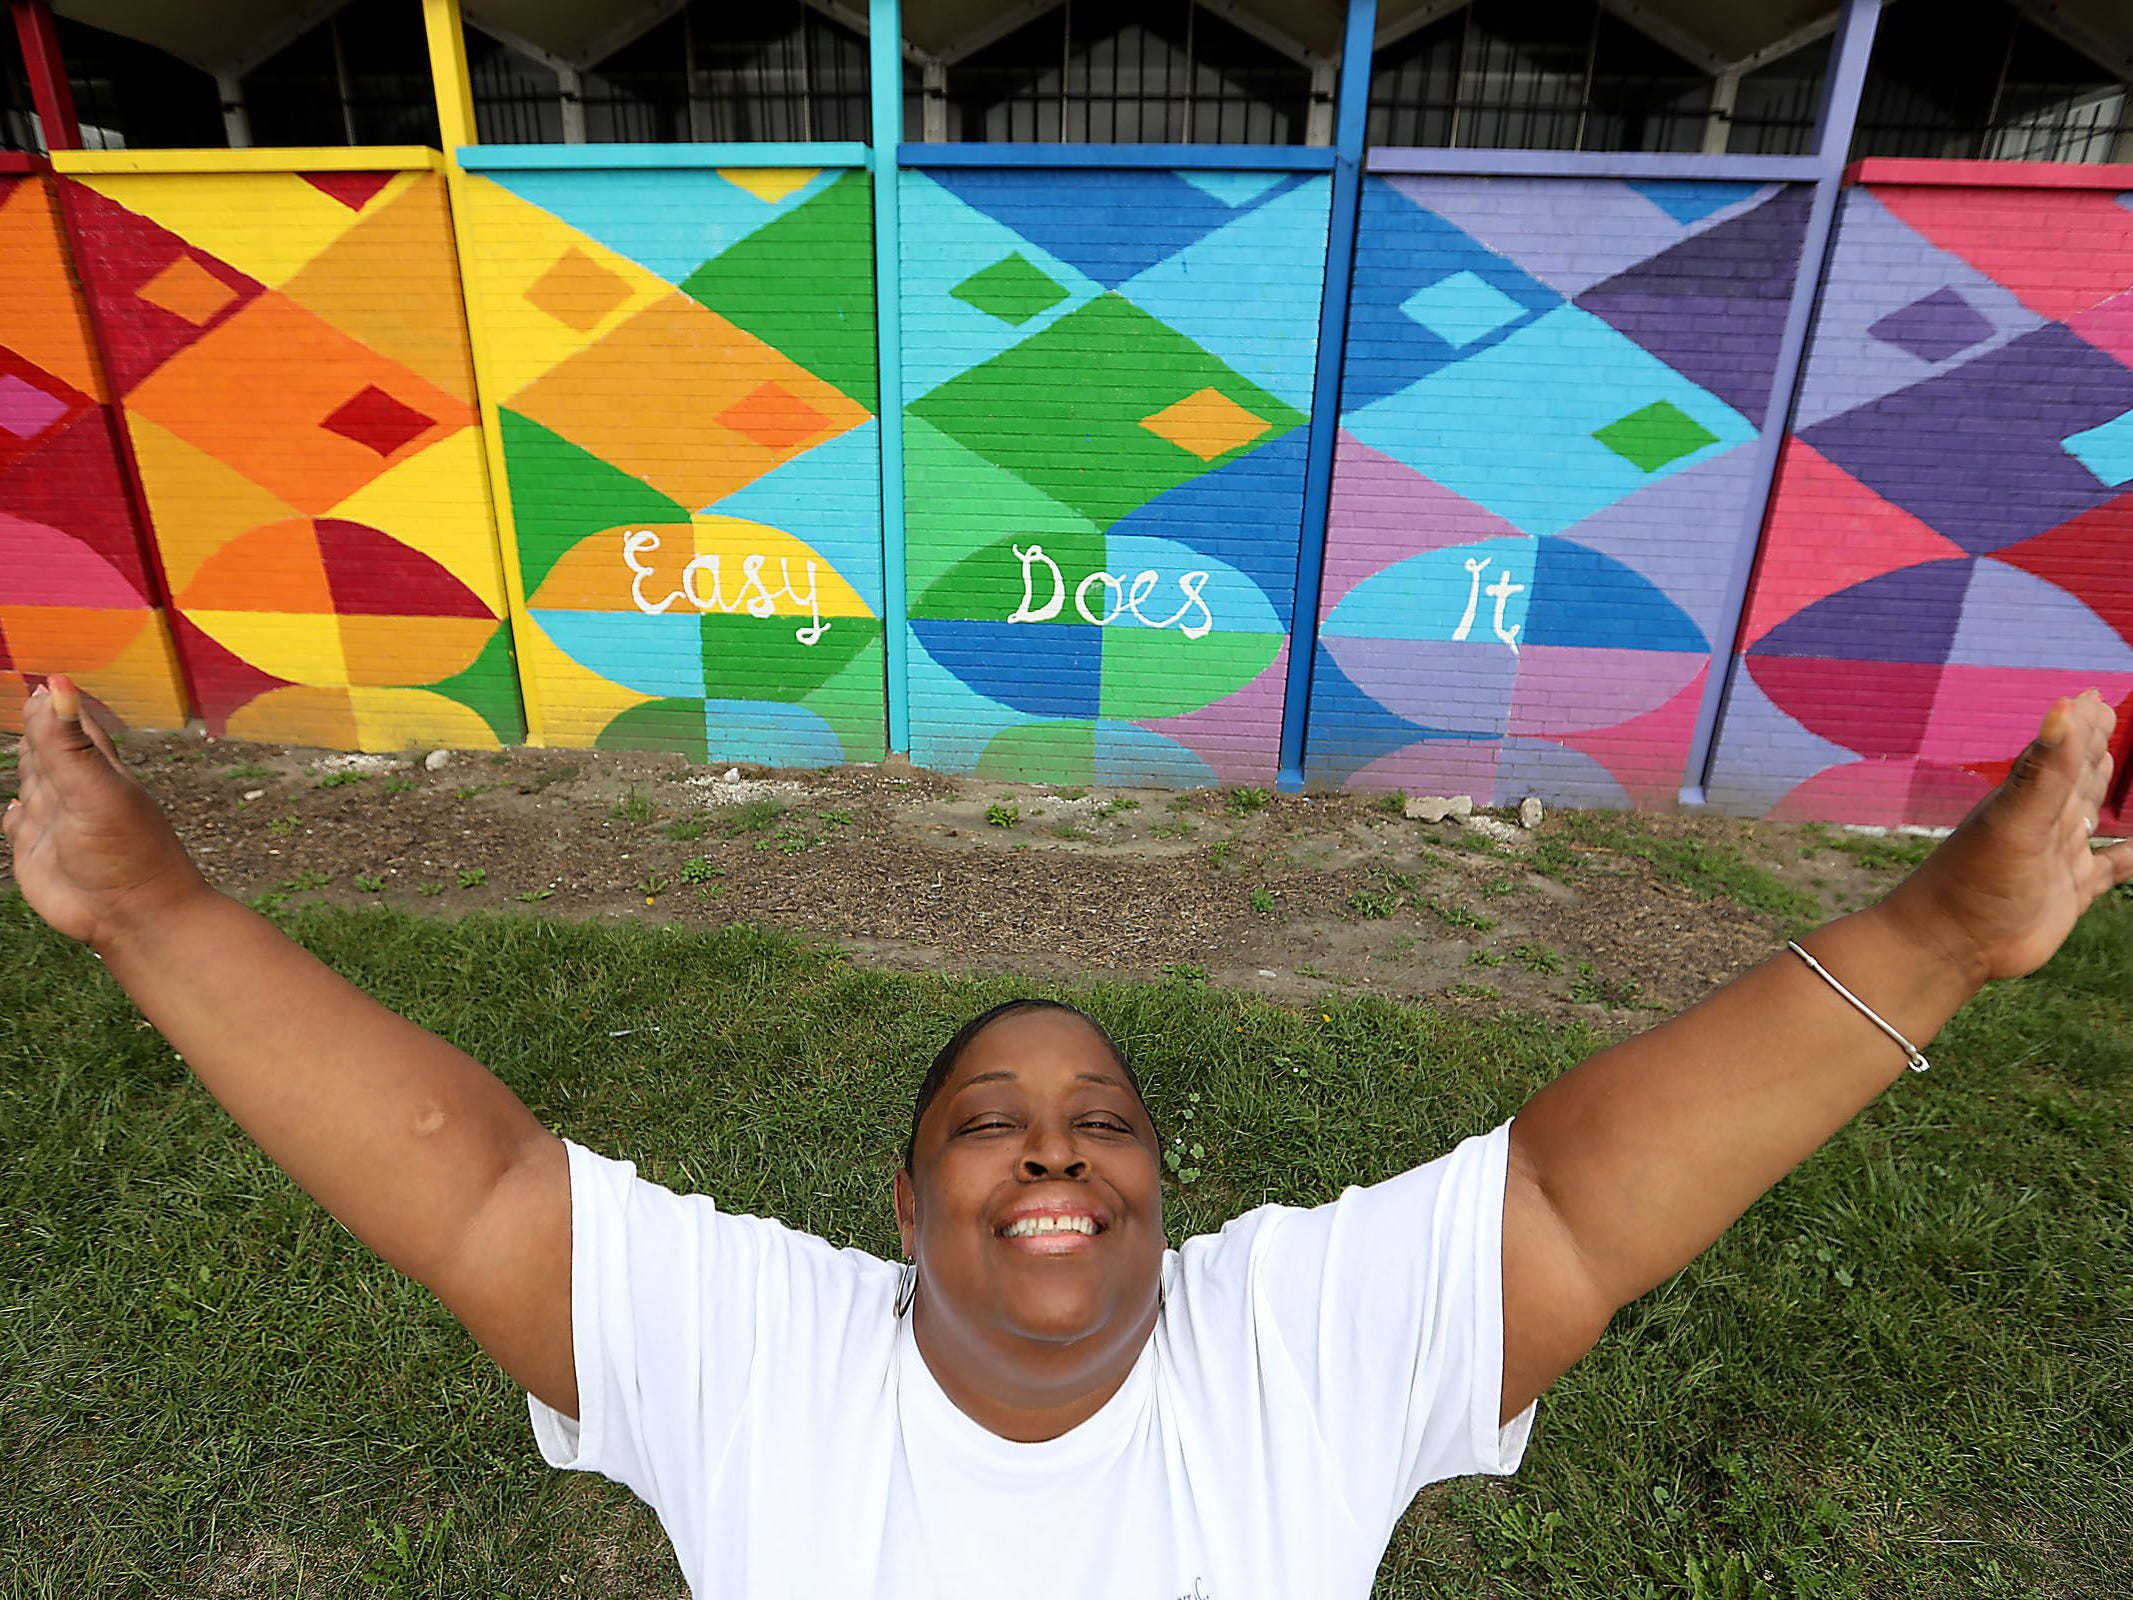 Stacia Cottrell-Scott, 54, of Detroit talks about living with a HIV diagnosis and being an advocate for those living with addiction and the consequences of it at the Detroit Recovery Project in Detroit on Wednesday, Sept. 19, 2018.